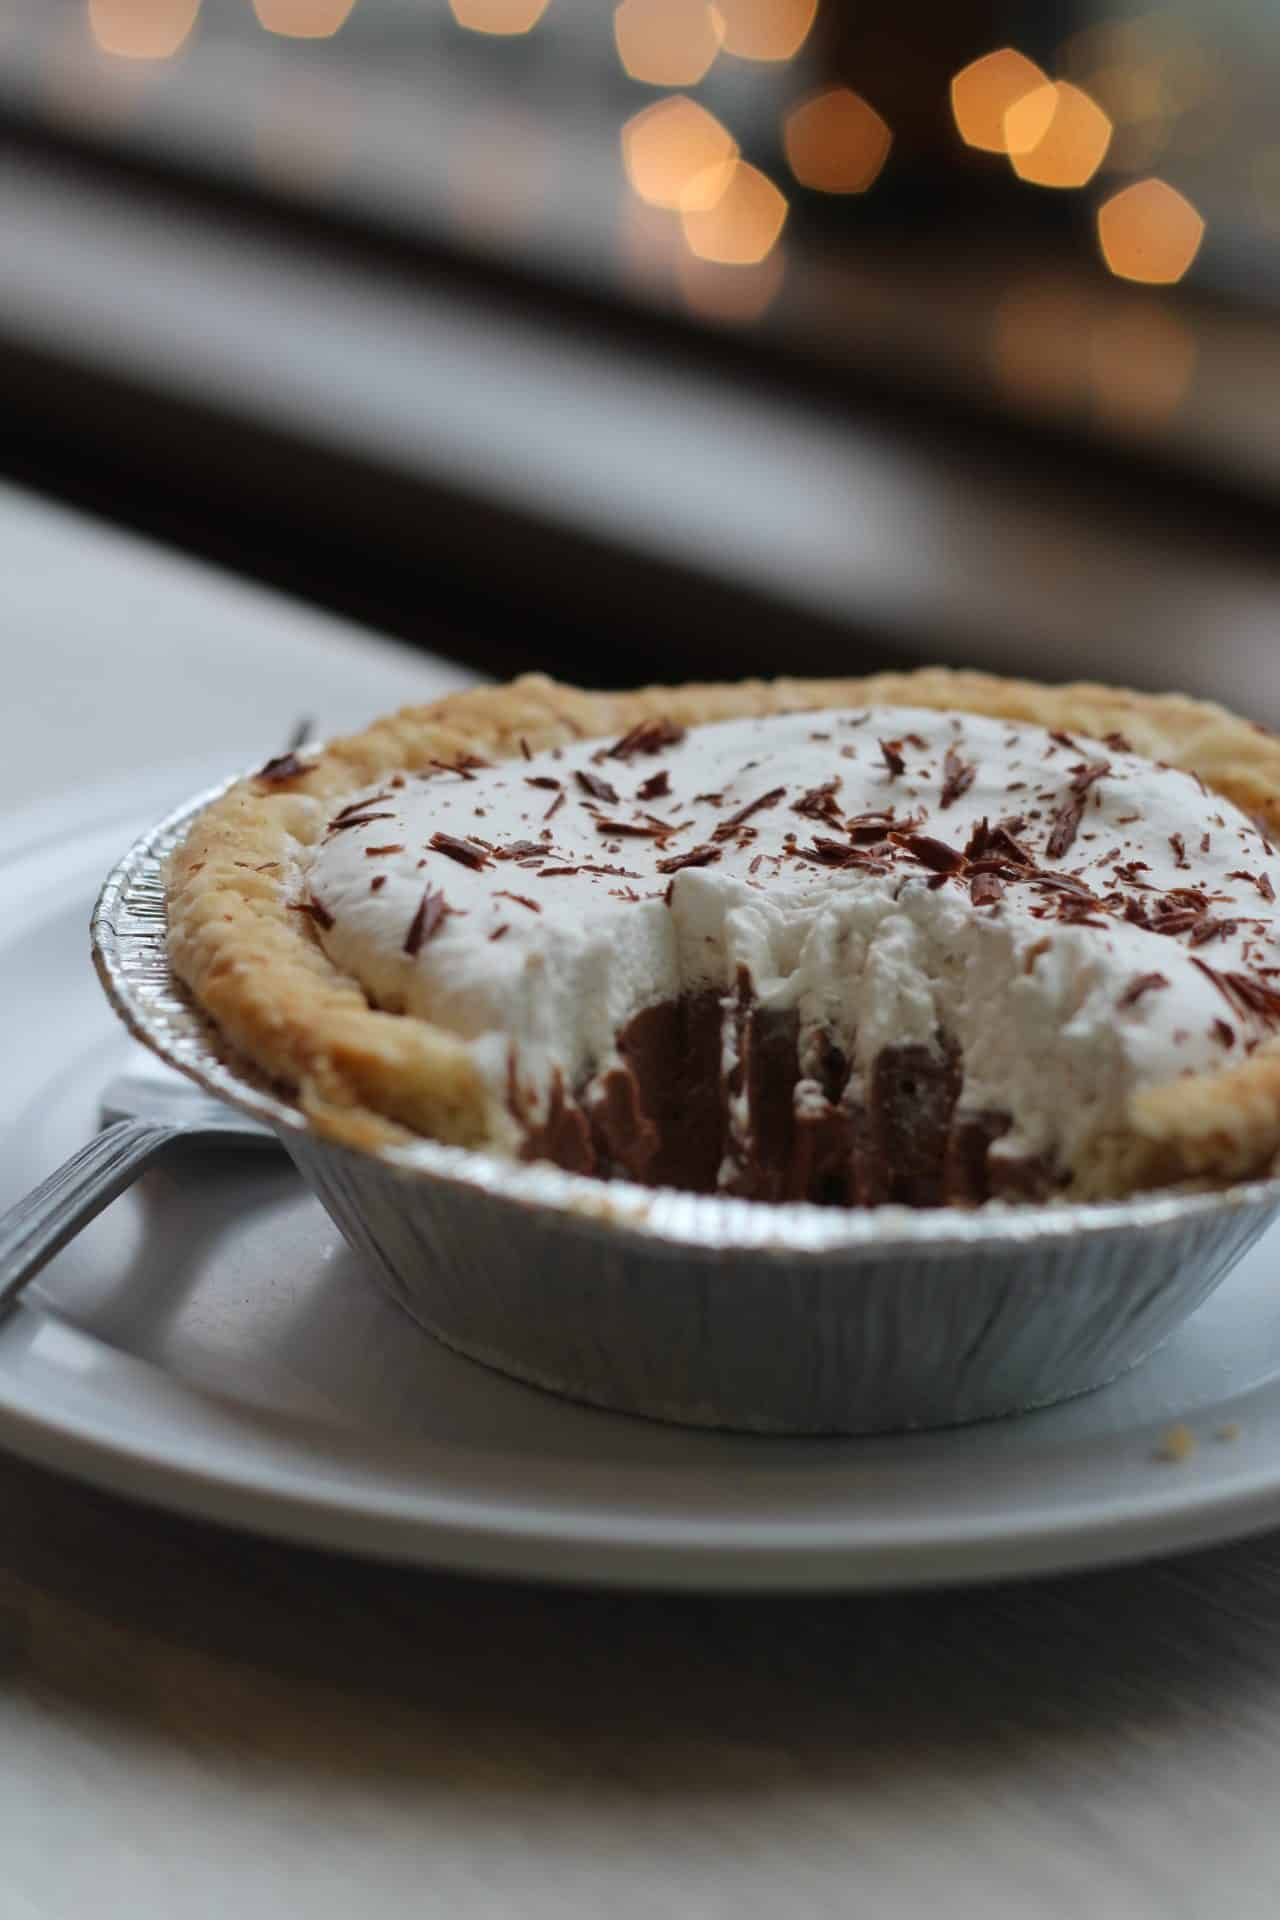 Cozy up with a slice of the best pie in Portland, whether you're into cherry, chocolate, or key lime. We've rounded up our favorites here!